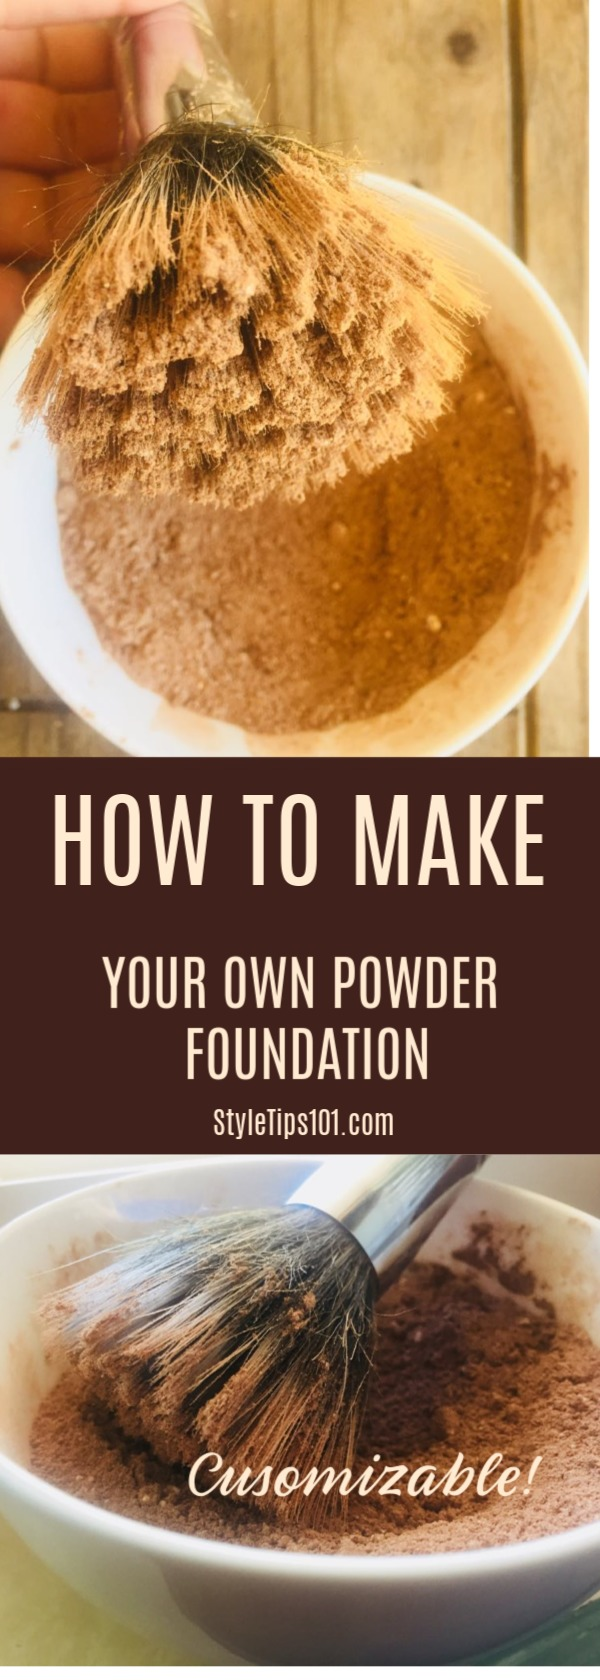 DIY Powder Foundation Recipe